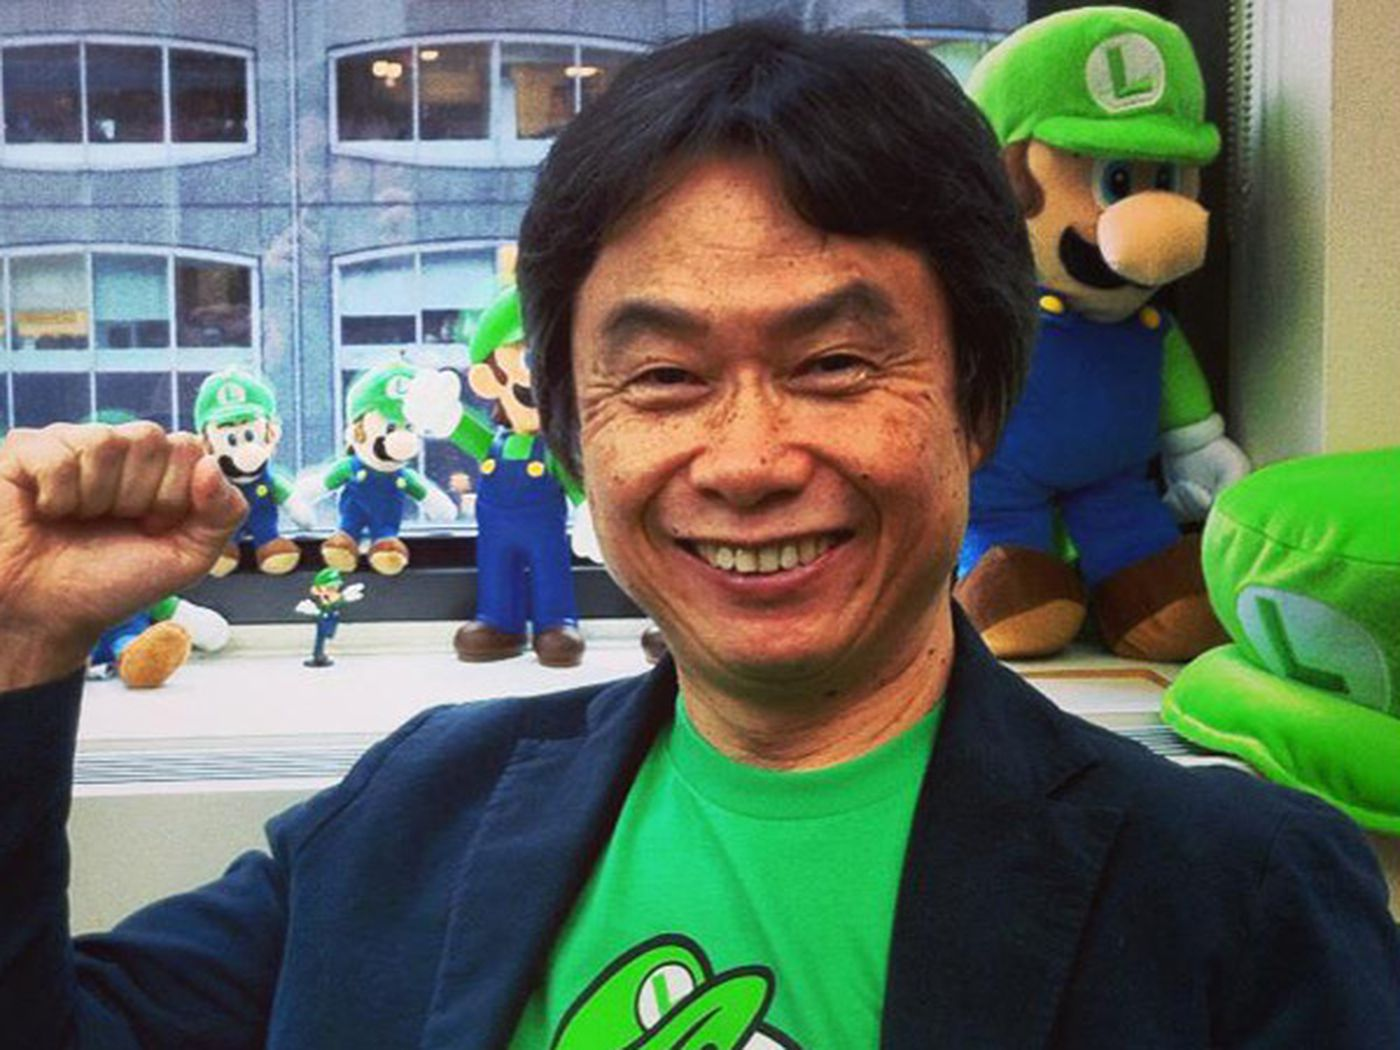 Nintendo is using Unreal Engine 4, and Miyamoto says they